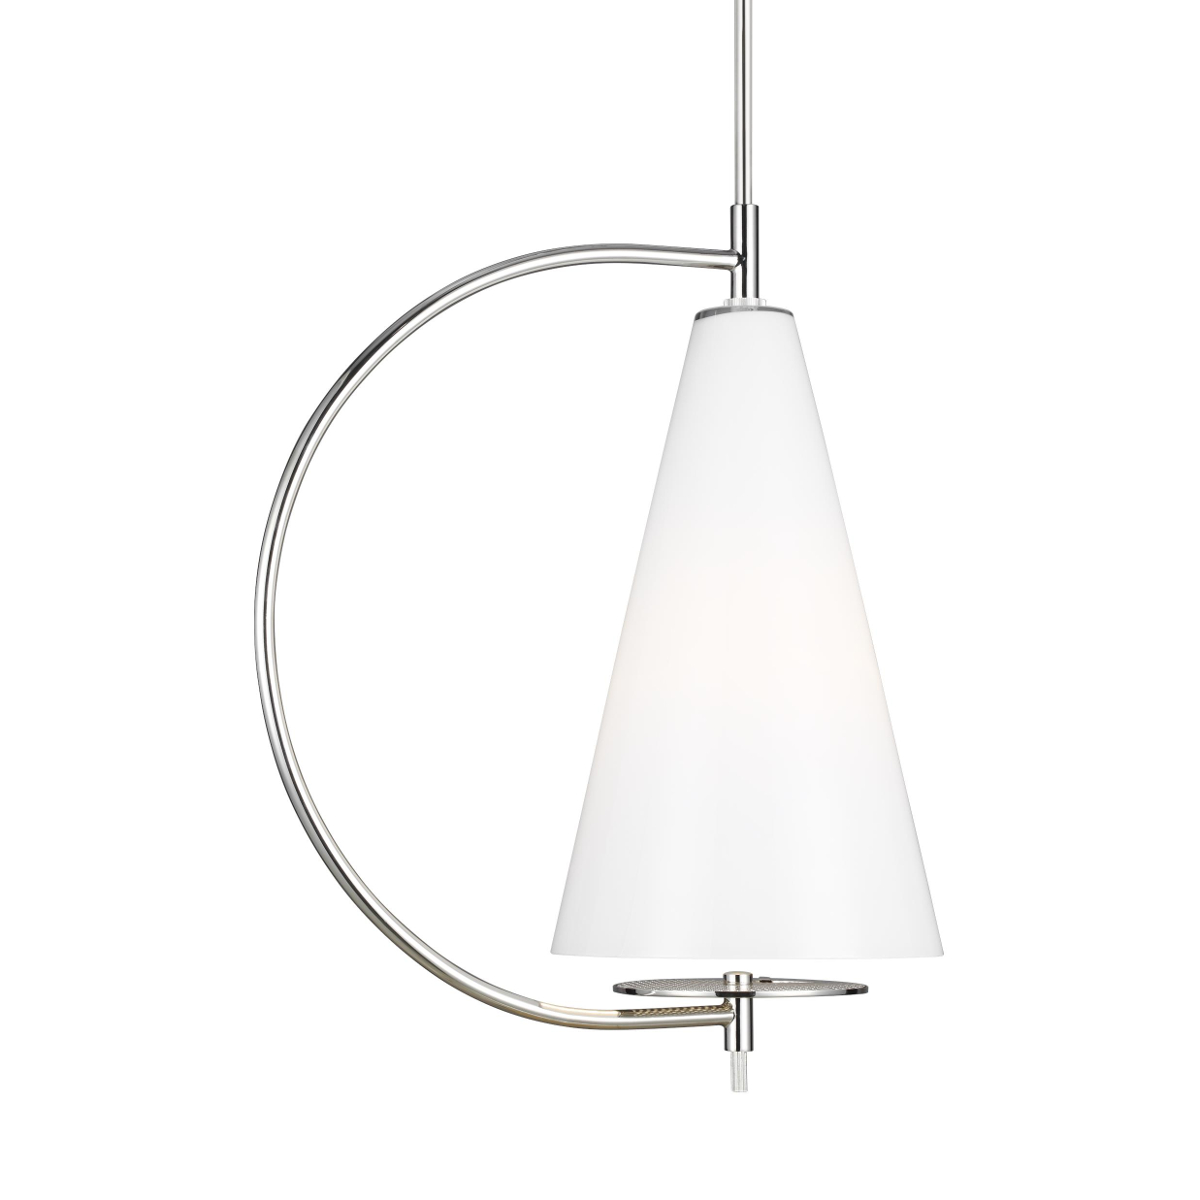 Polished Nickel pendant with White shade